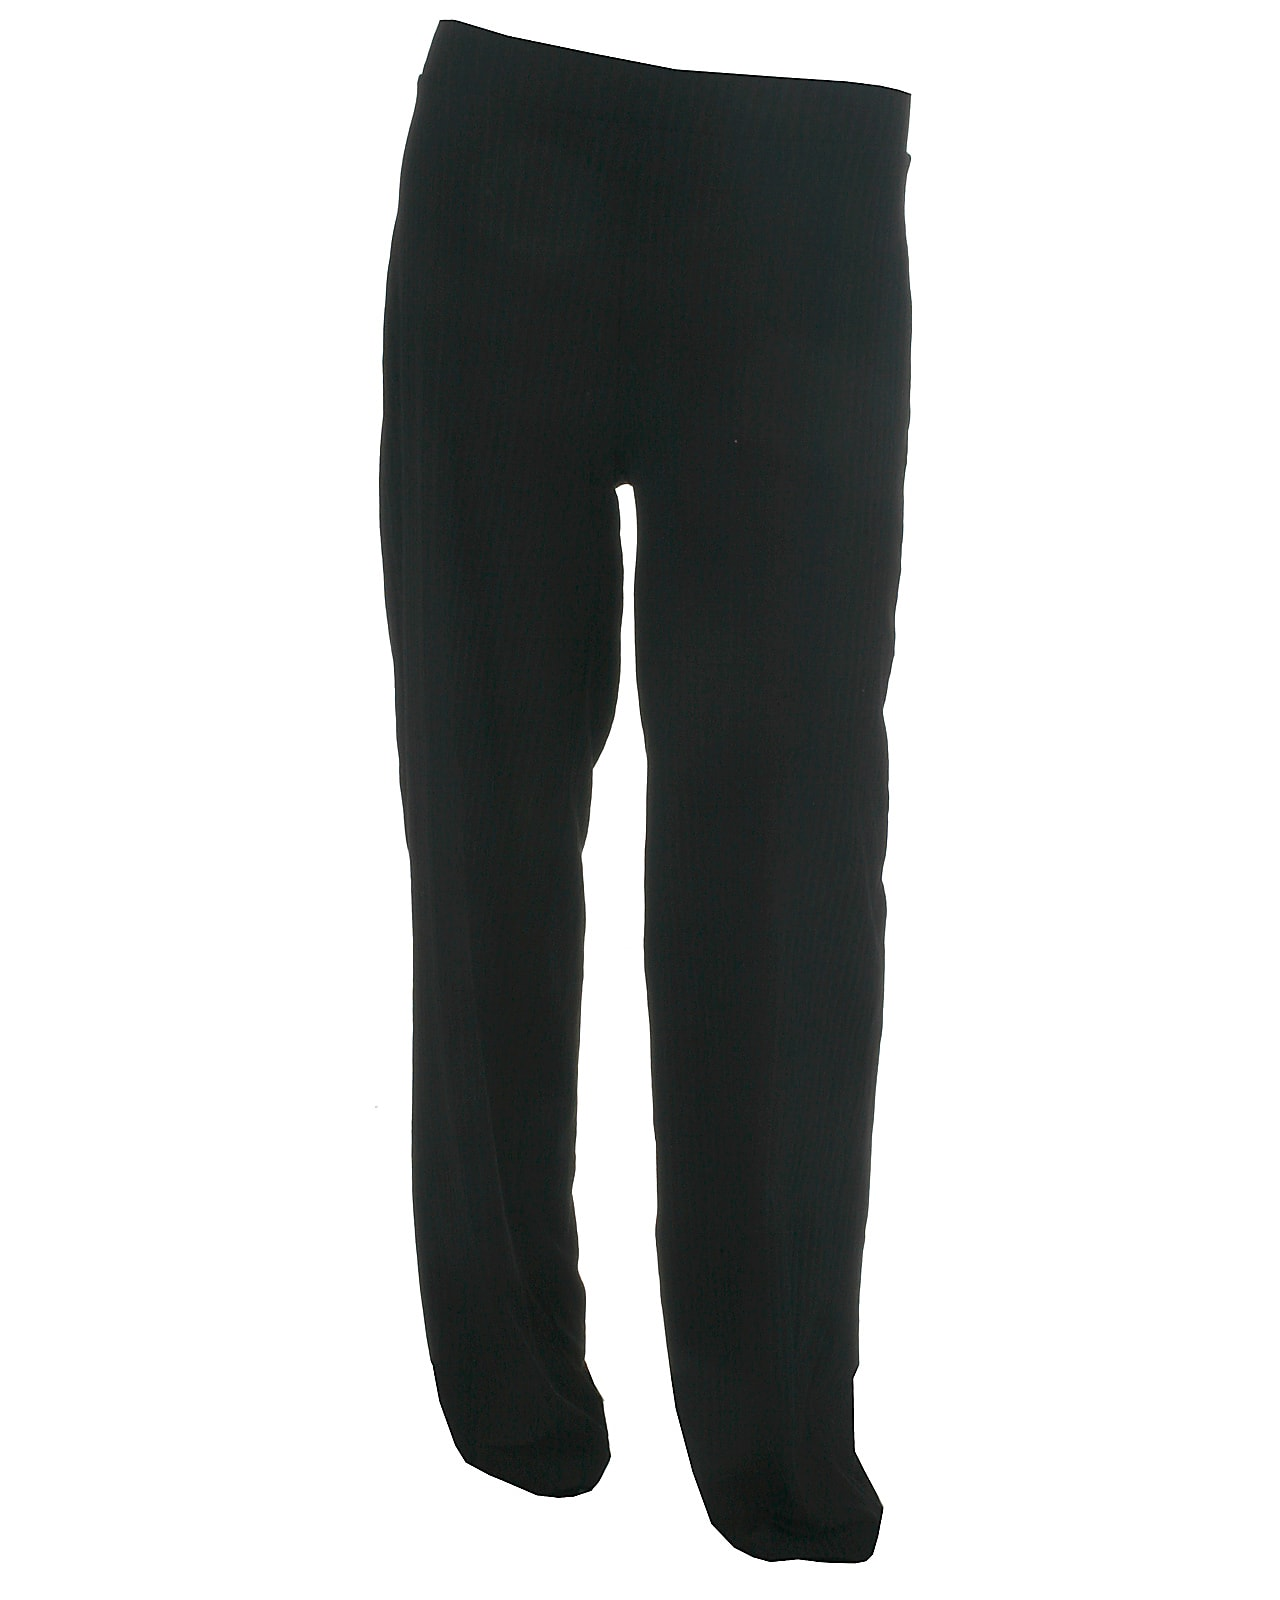 Image of Only wide pant, Nella, black